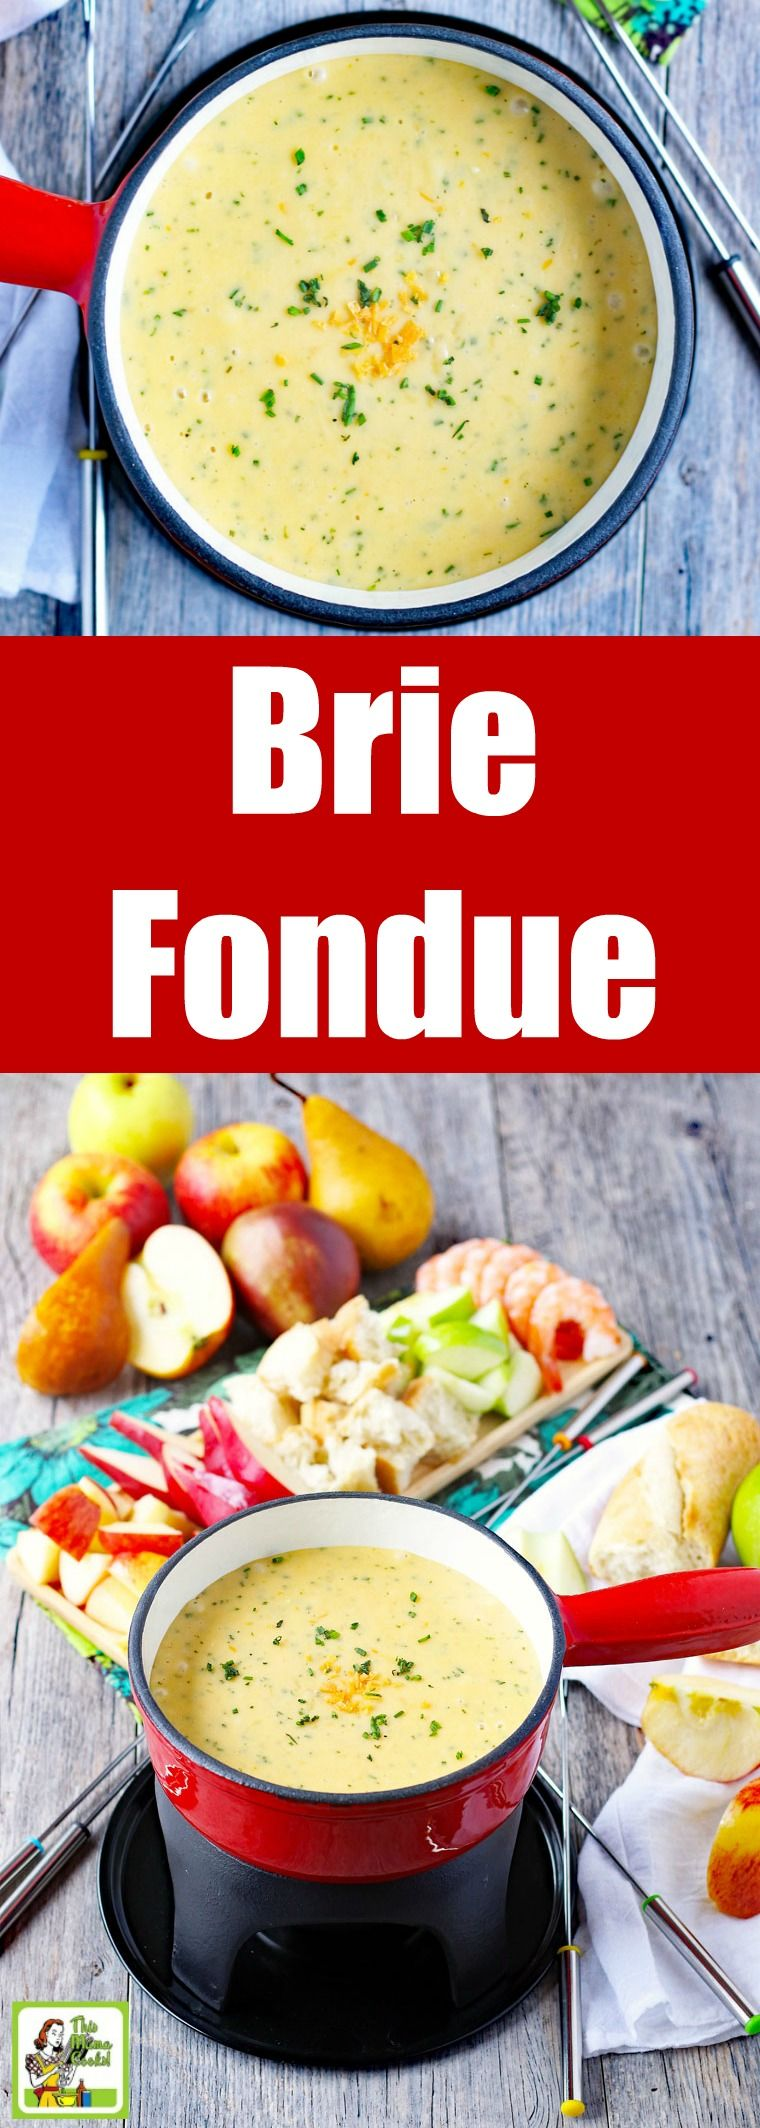 Make A Pot Of Brie Chive Fondue For Your Next Party Or A Romantic Dinner This Brie Fondue Recipe Is Brie Fondue Recipe Cheese Fondue Dippers Fondue Recipes